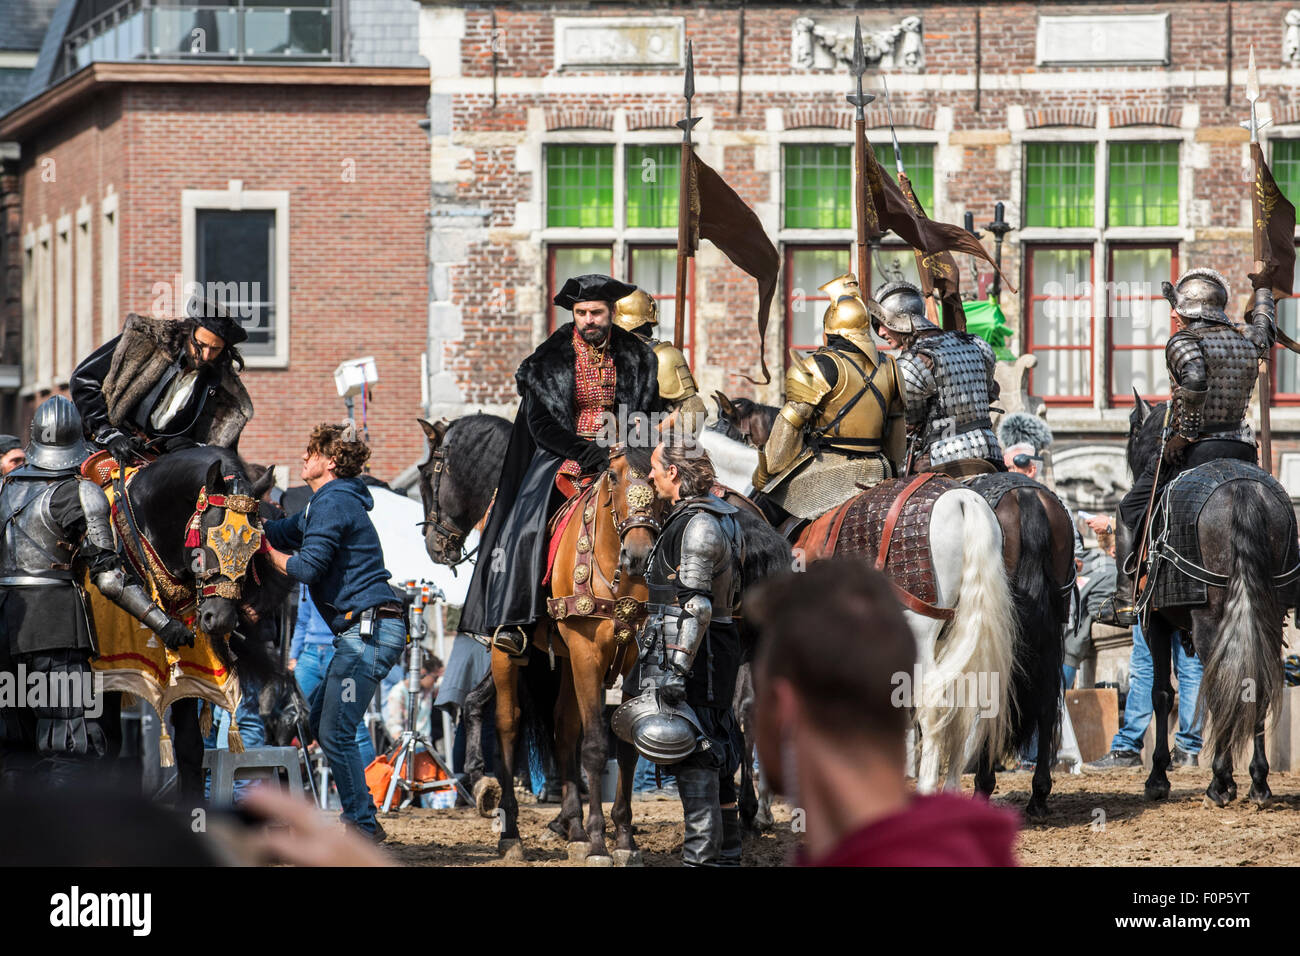 Ghent, Belgium. 19th August, 2015. Actors Adrien Brody, in the role of Charles the Fifth, and Michael Pas on filmset - Stock Image